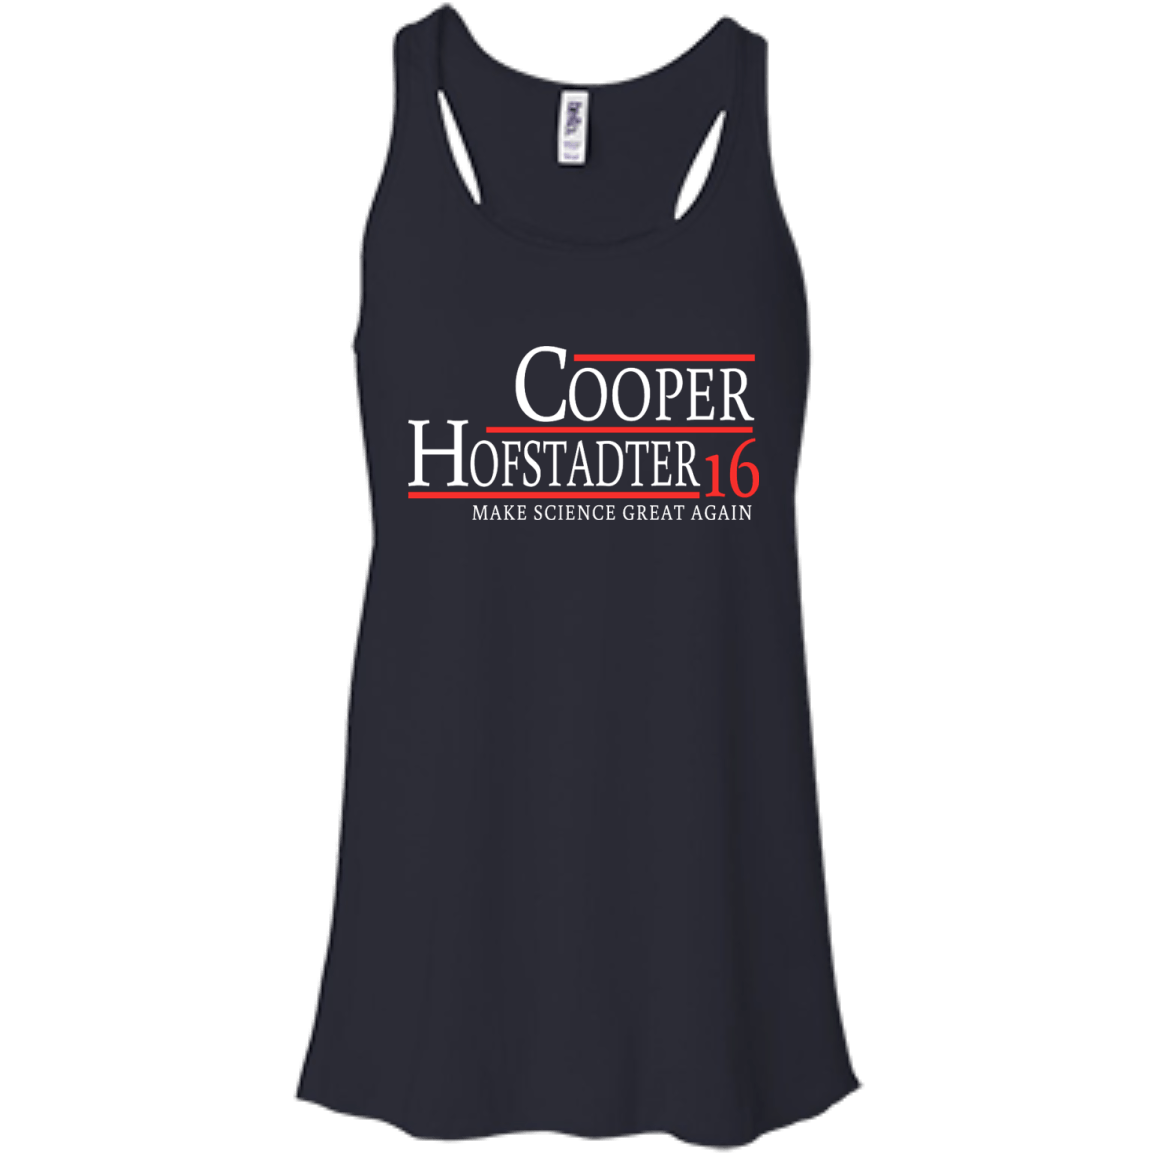 Cooper Hofstadter for president 2016 T shirt & Hoodies, Tank Top